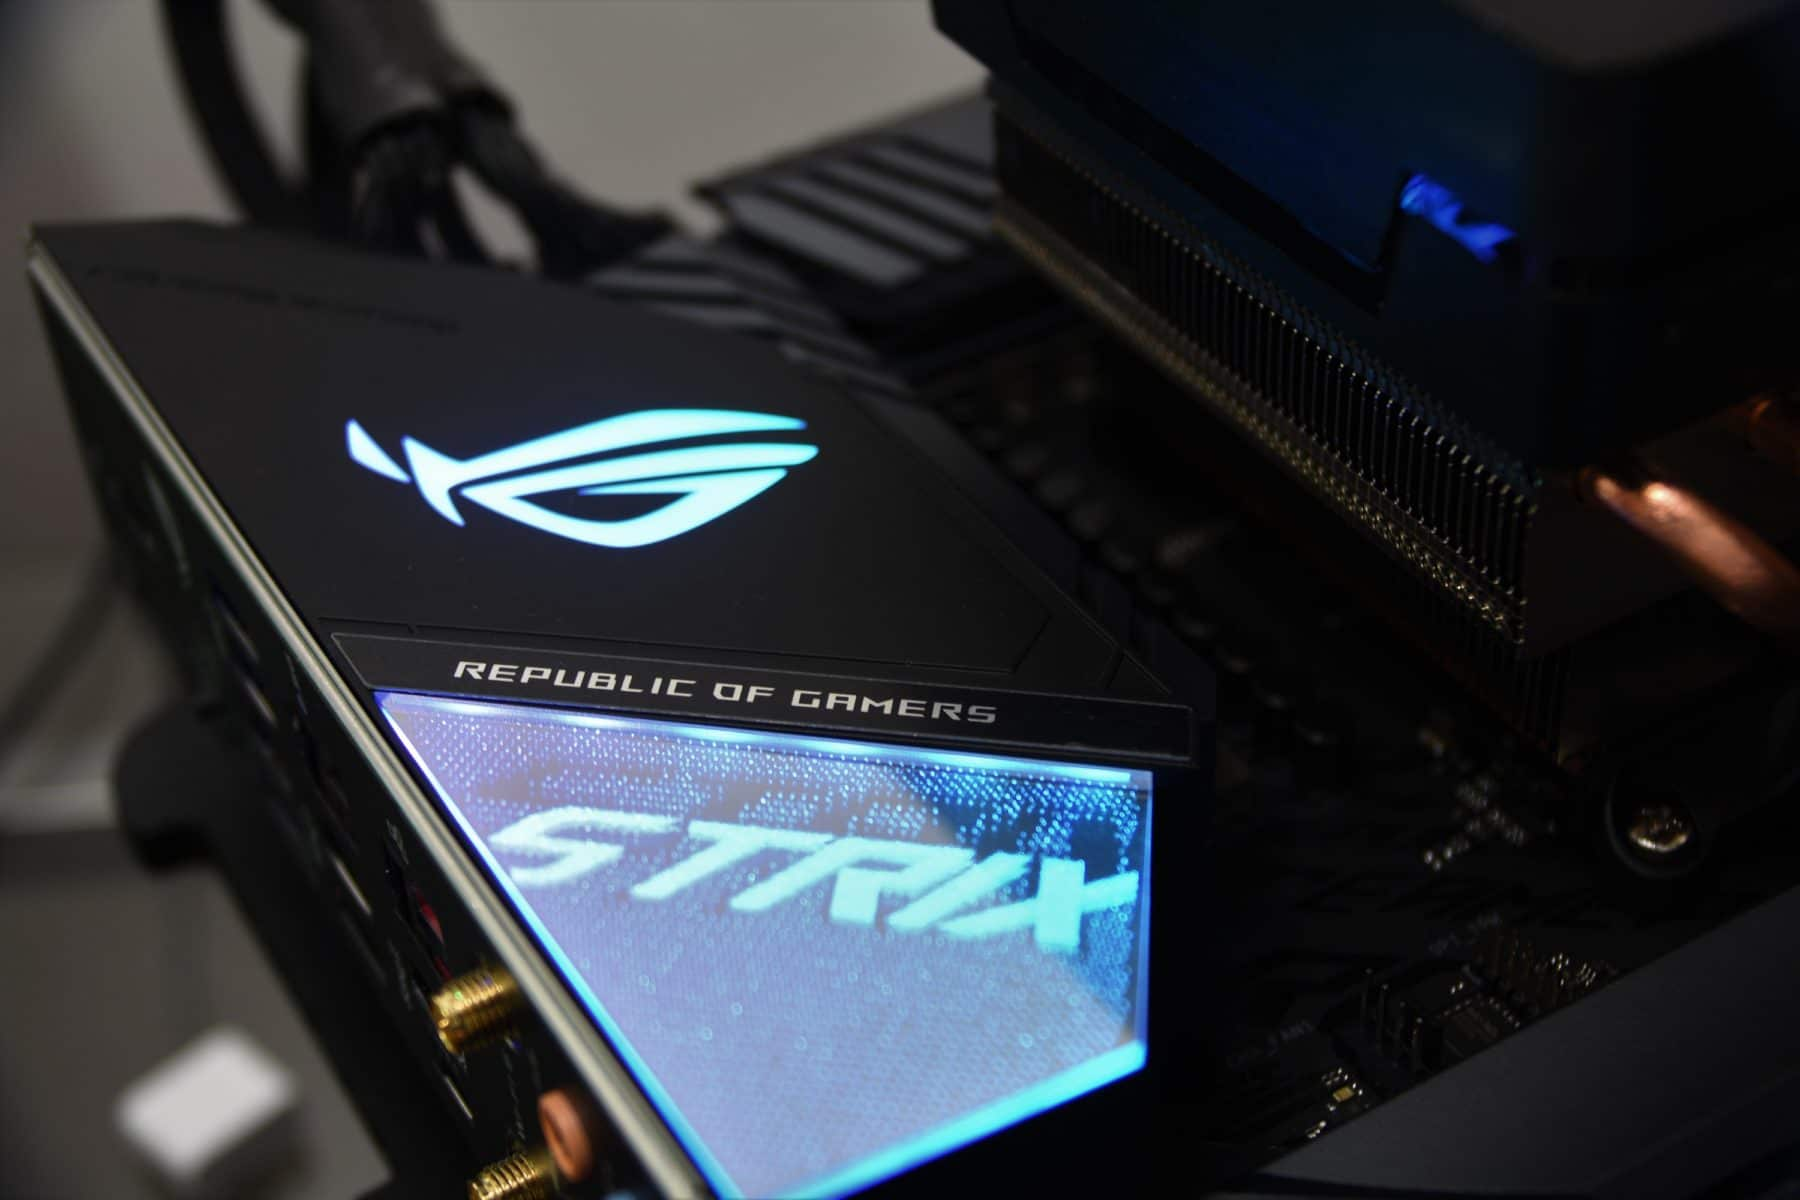 Review ASUS ROG STRIX X570-E GAMING [AM4] – Specs | Performance